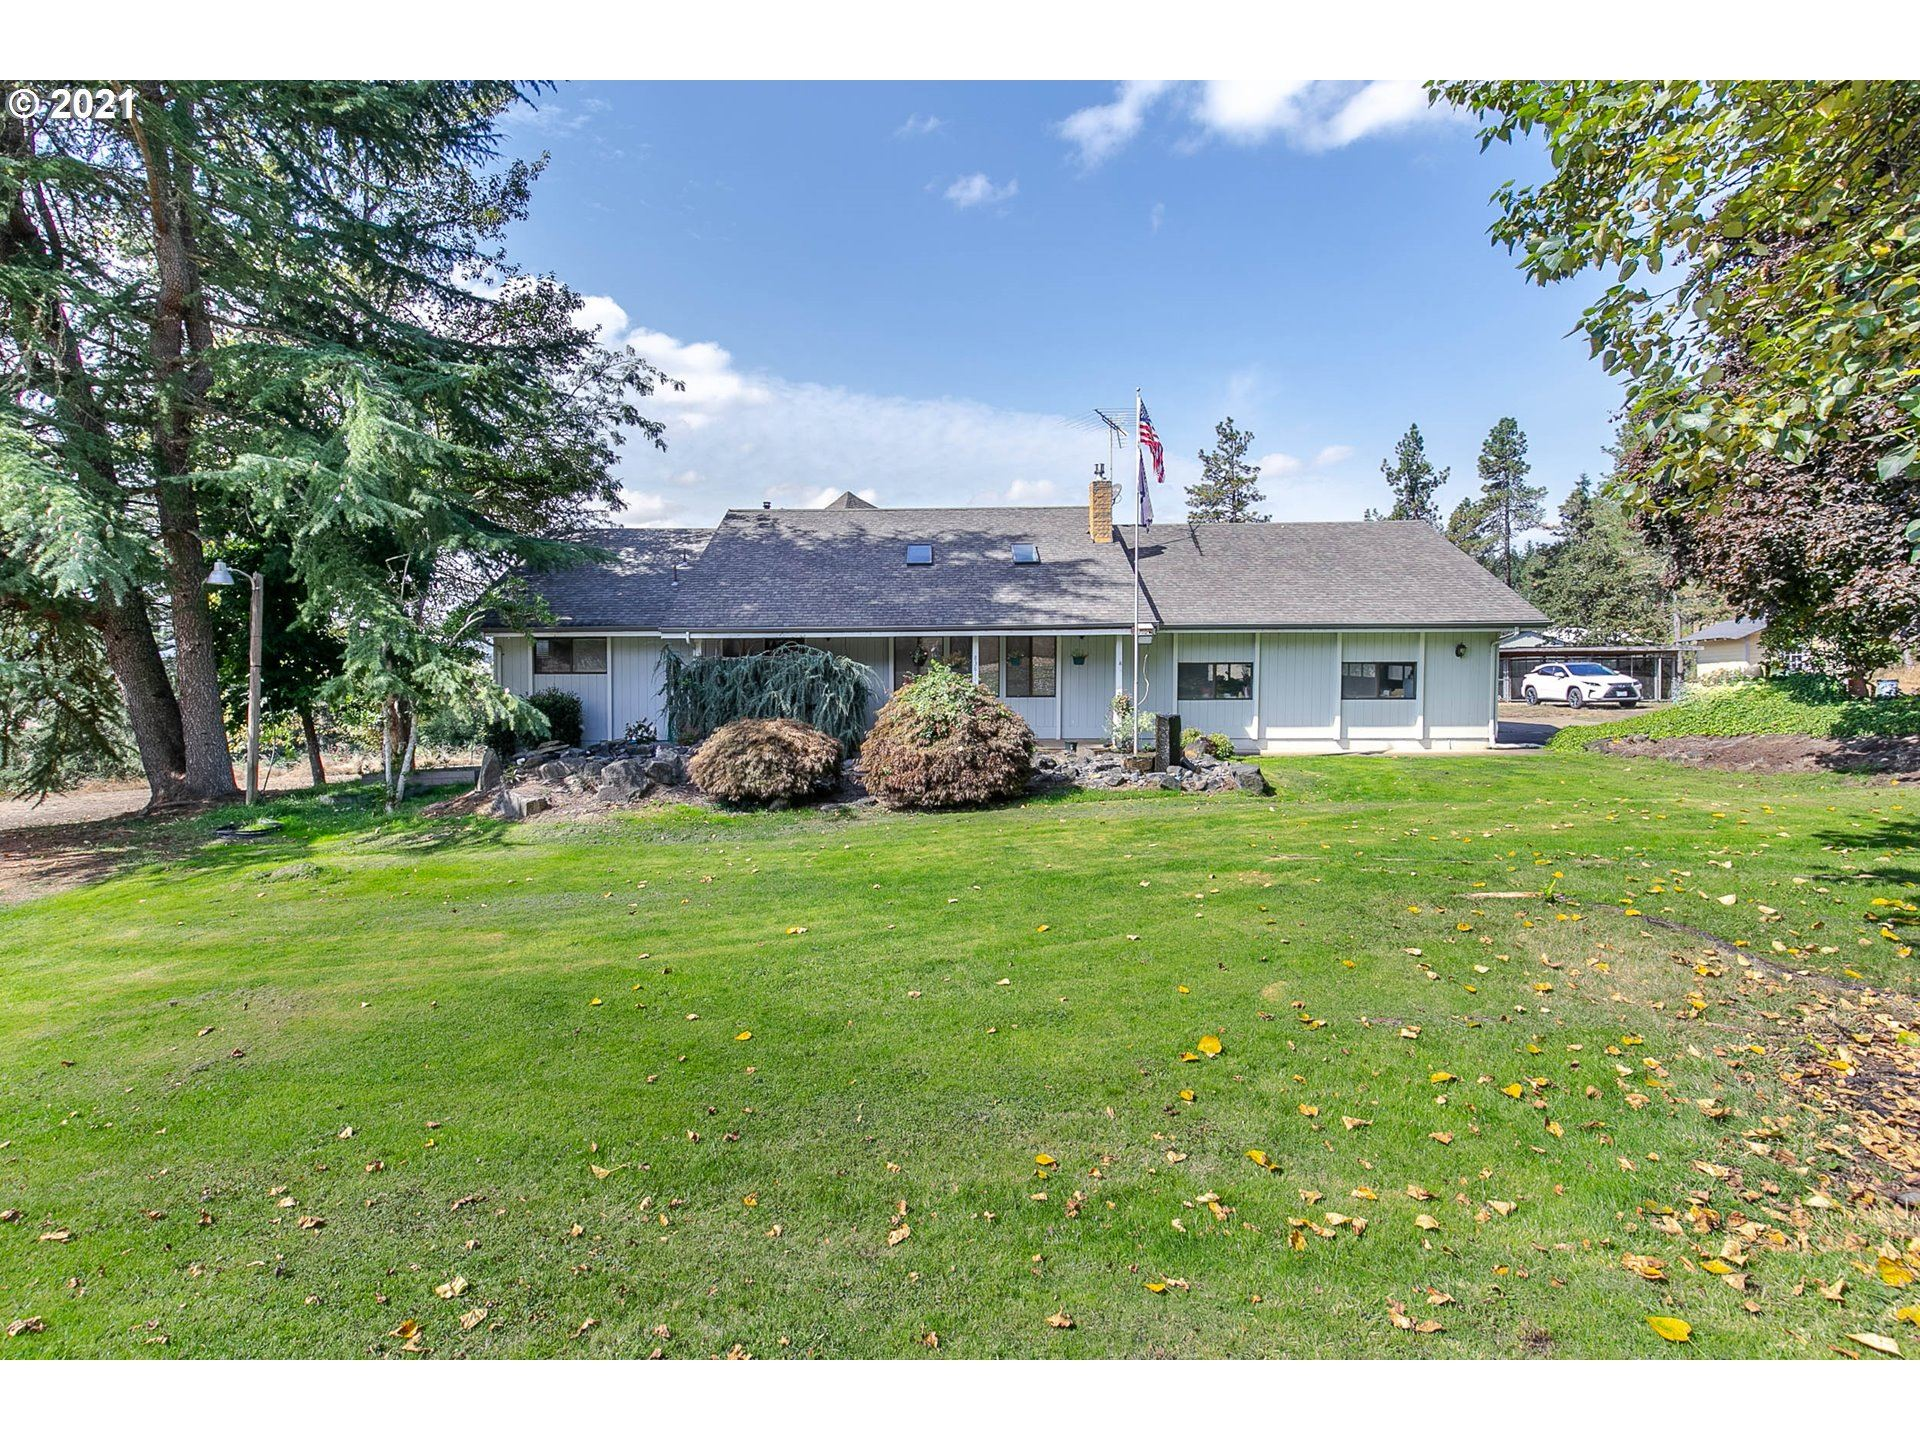 Photo for 83811 S MORNINGSTAR RD, Creswell, OR 97426 (MLS # 21171800)